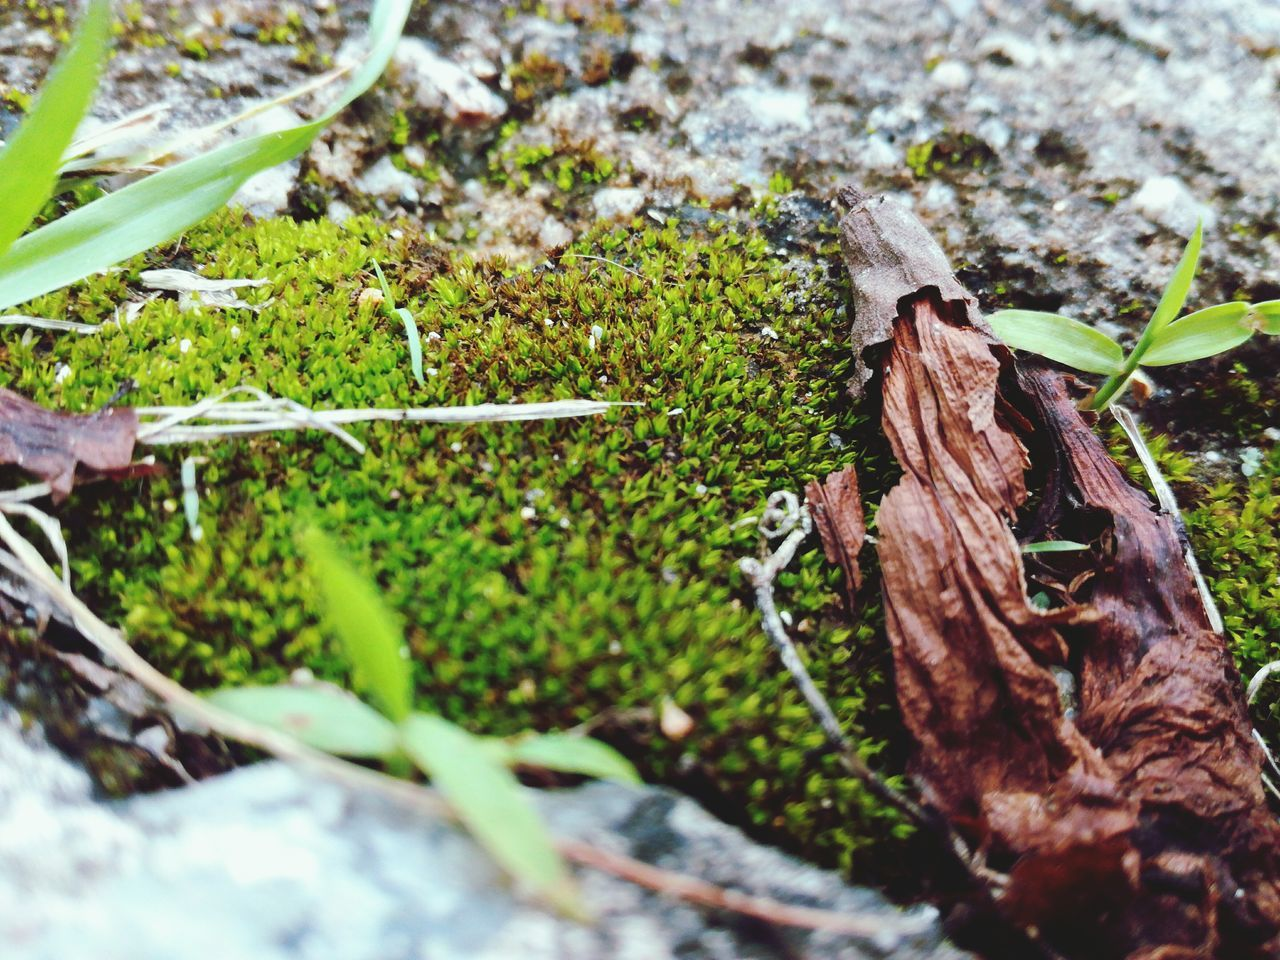 leaf, selective focus, no people, nature, day, growth, outdoors, plant, green color, close-up